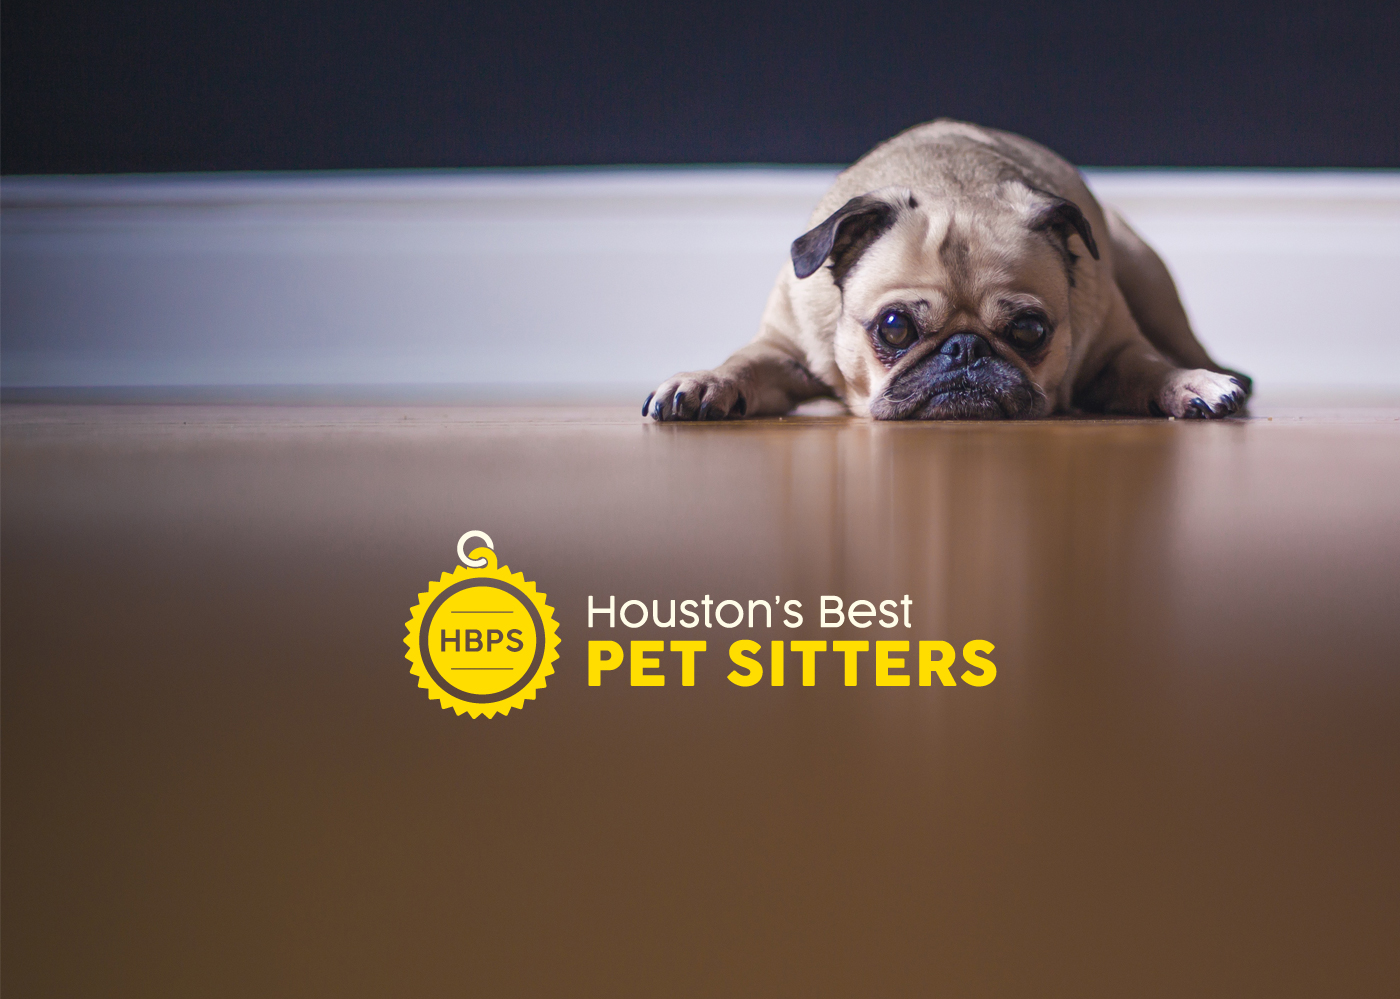 Houston's Best Pet Sitters website designed by Bellaworks Web Design